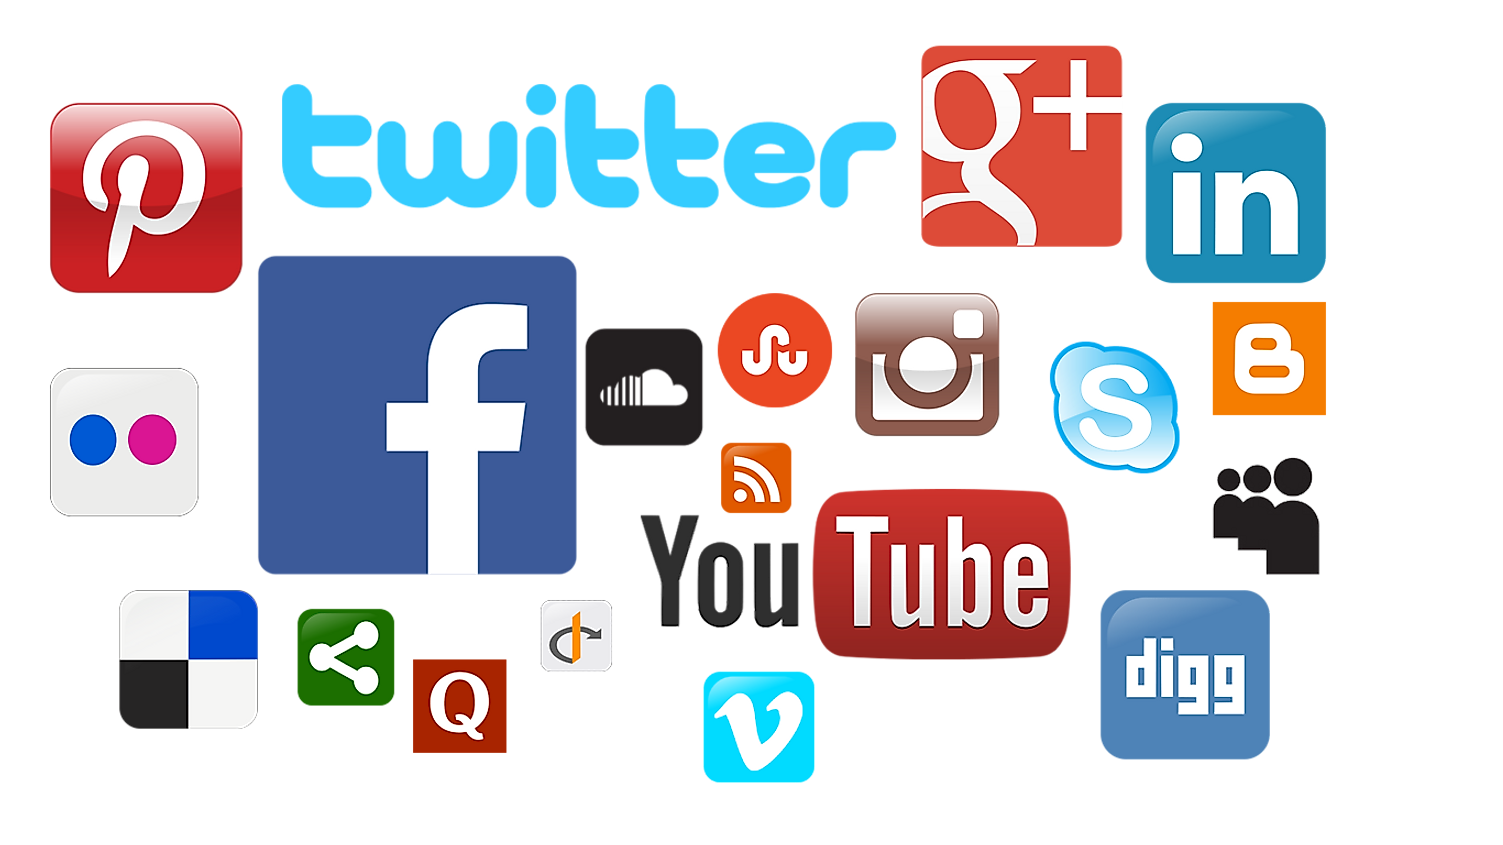 Attorneys and Social Media Postings: What's permissible? (m.corpcounsel.com)